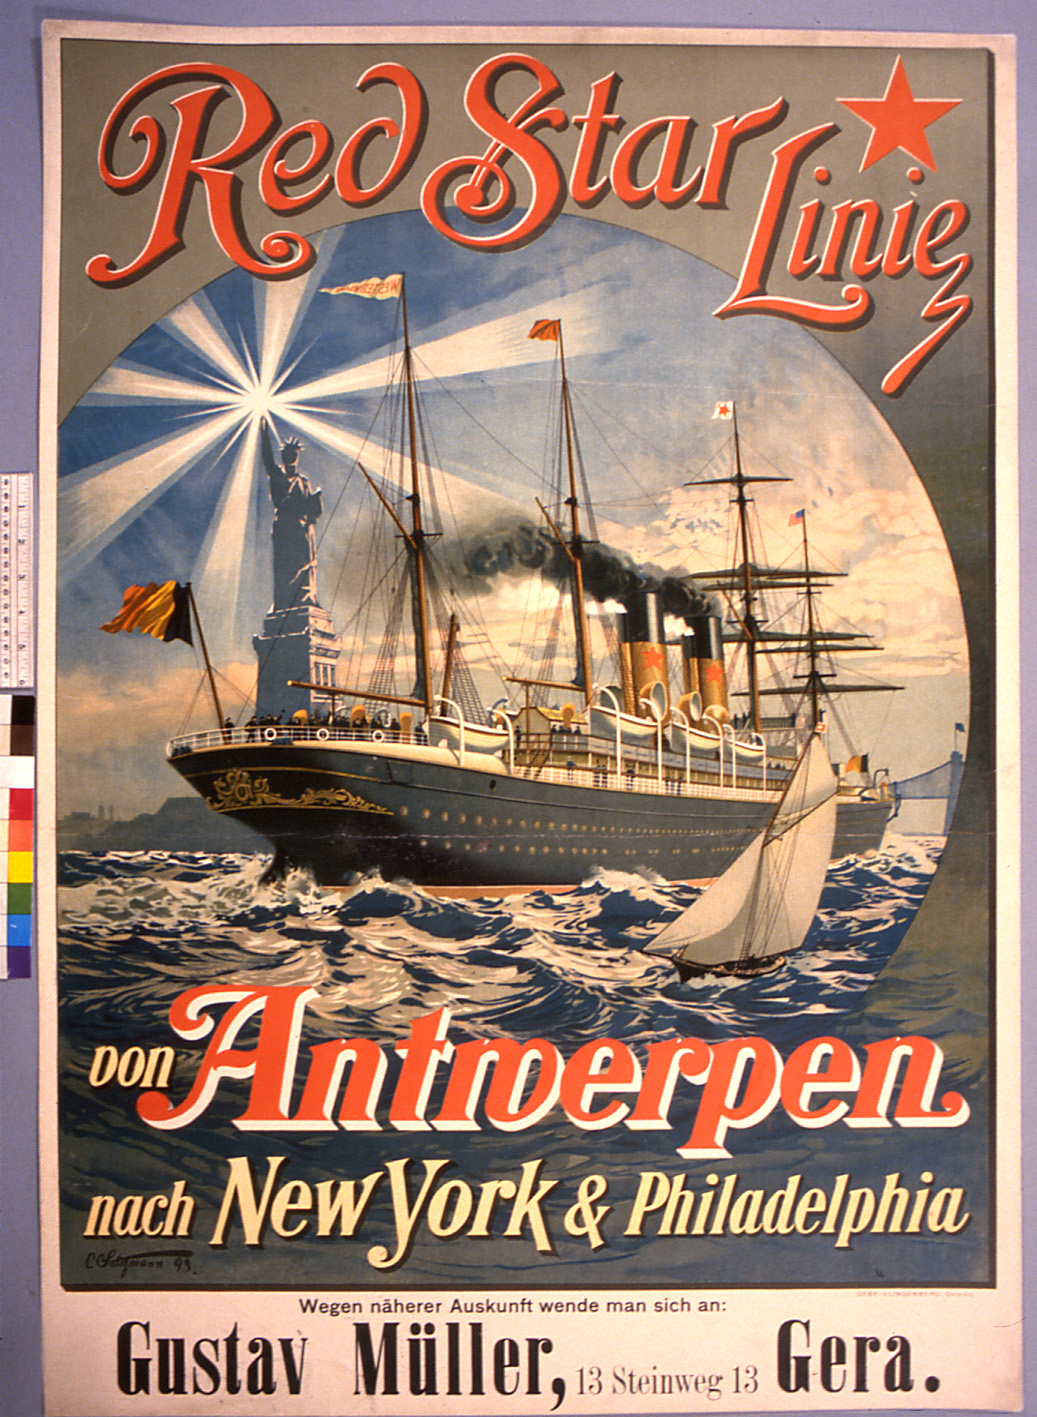 Historic Red Star Line Poster